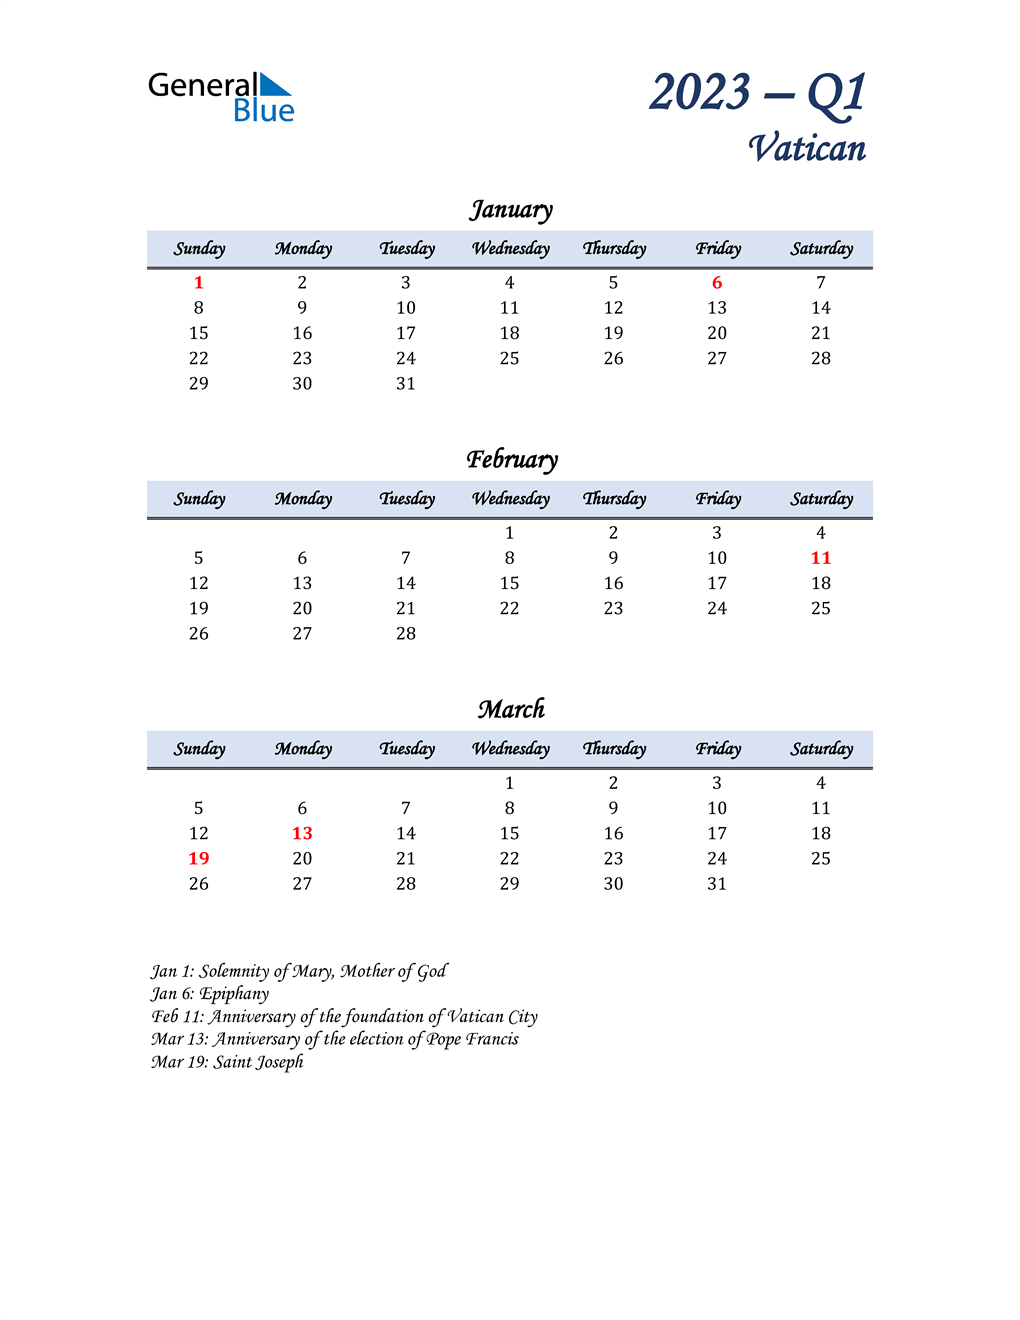 January, February, and March Calendar for Vatican